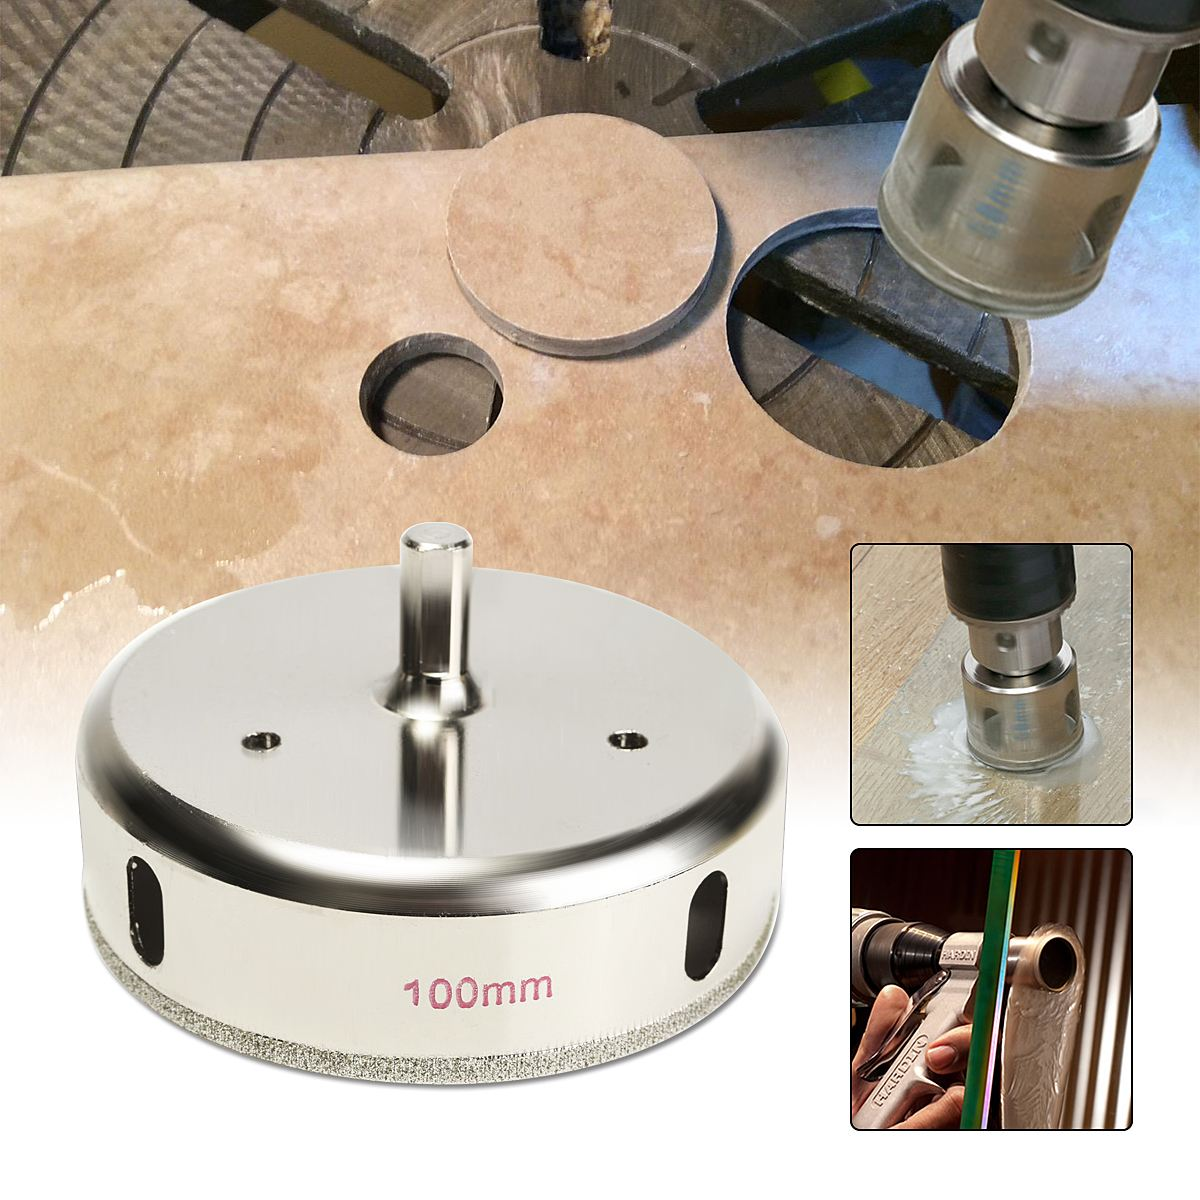 100mm 4 inch Diamond Coated Drill Bit Hole Saw Cutter Glass Tile Ceramic Marble Drilling Power Tool doersupp 14pcs diamond hole saw coated core drill bit set tile marble glass ceramic drilling 3 70mm cutter power tool set